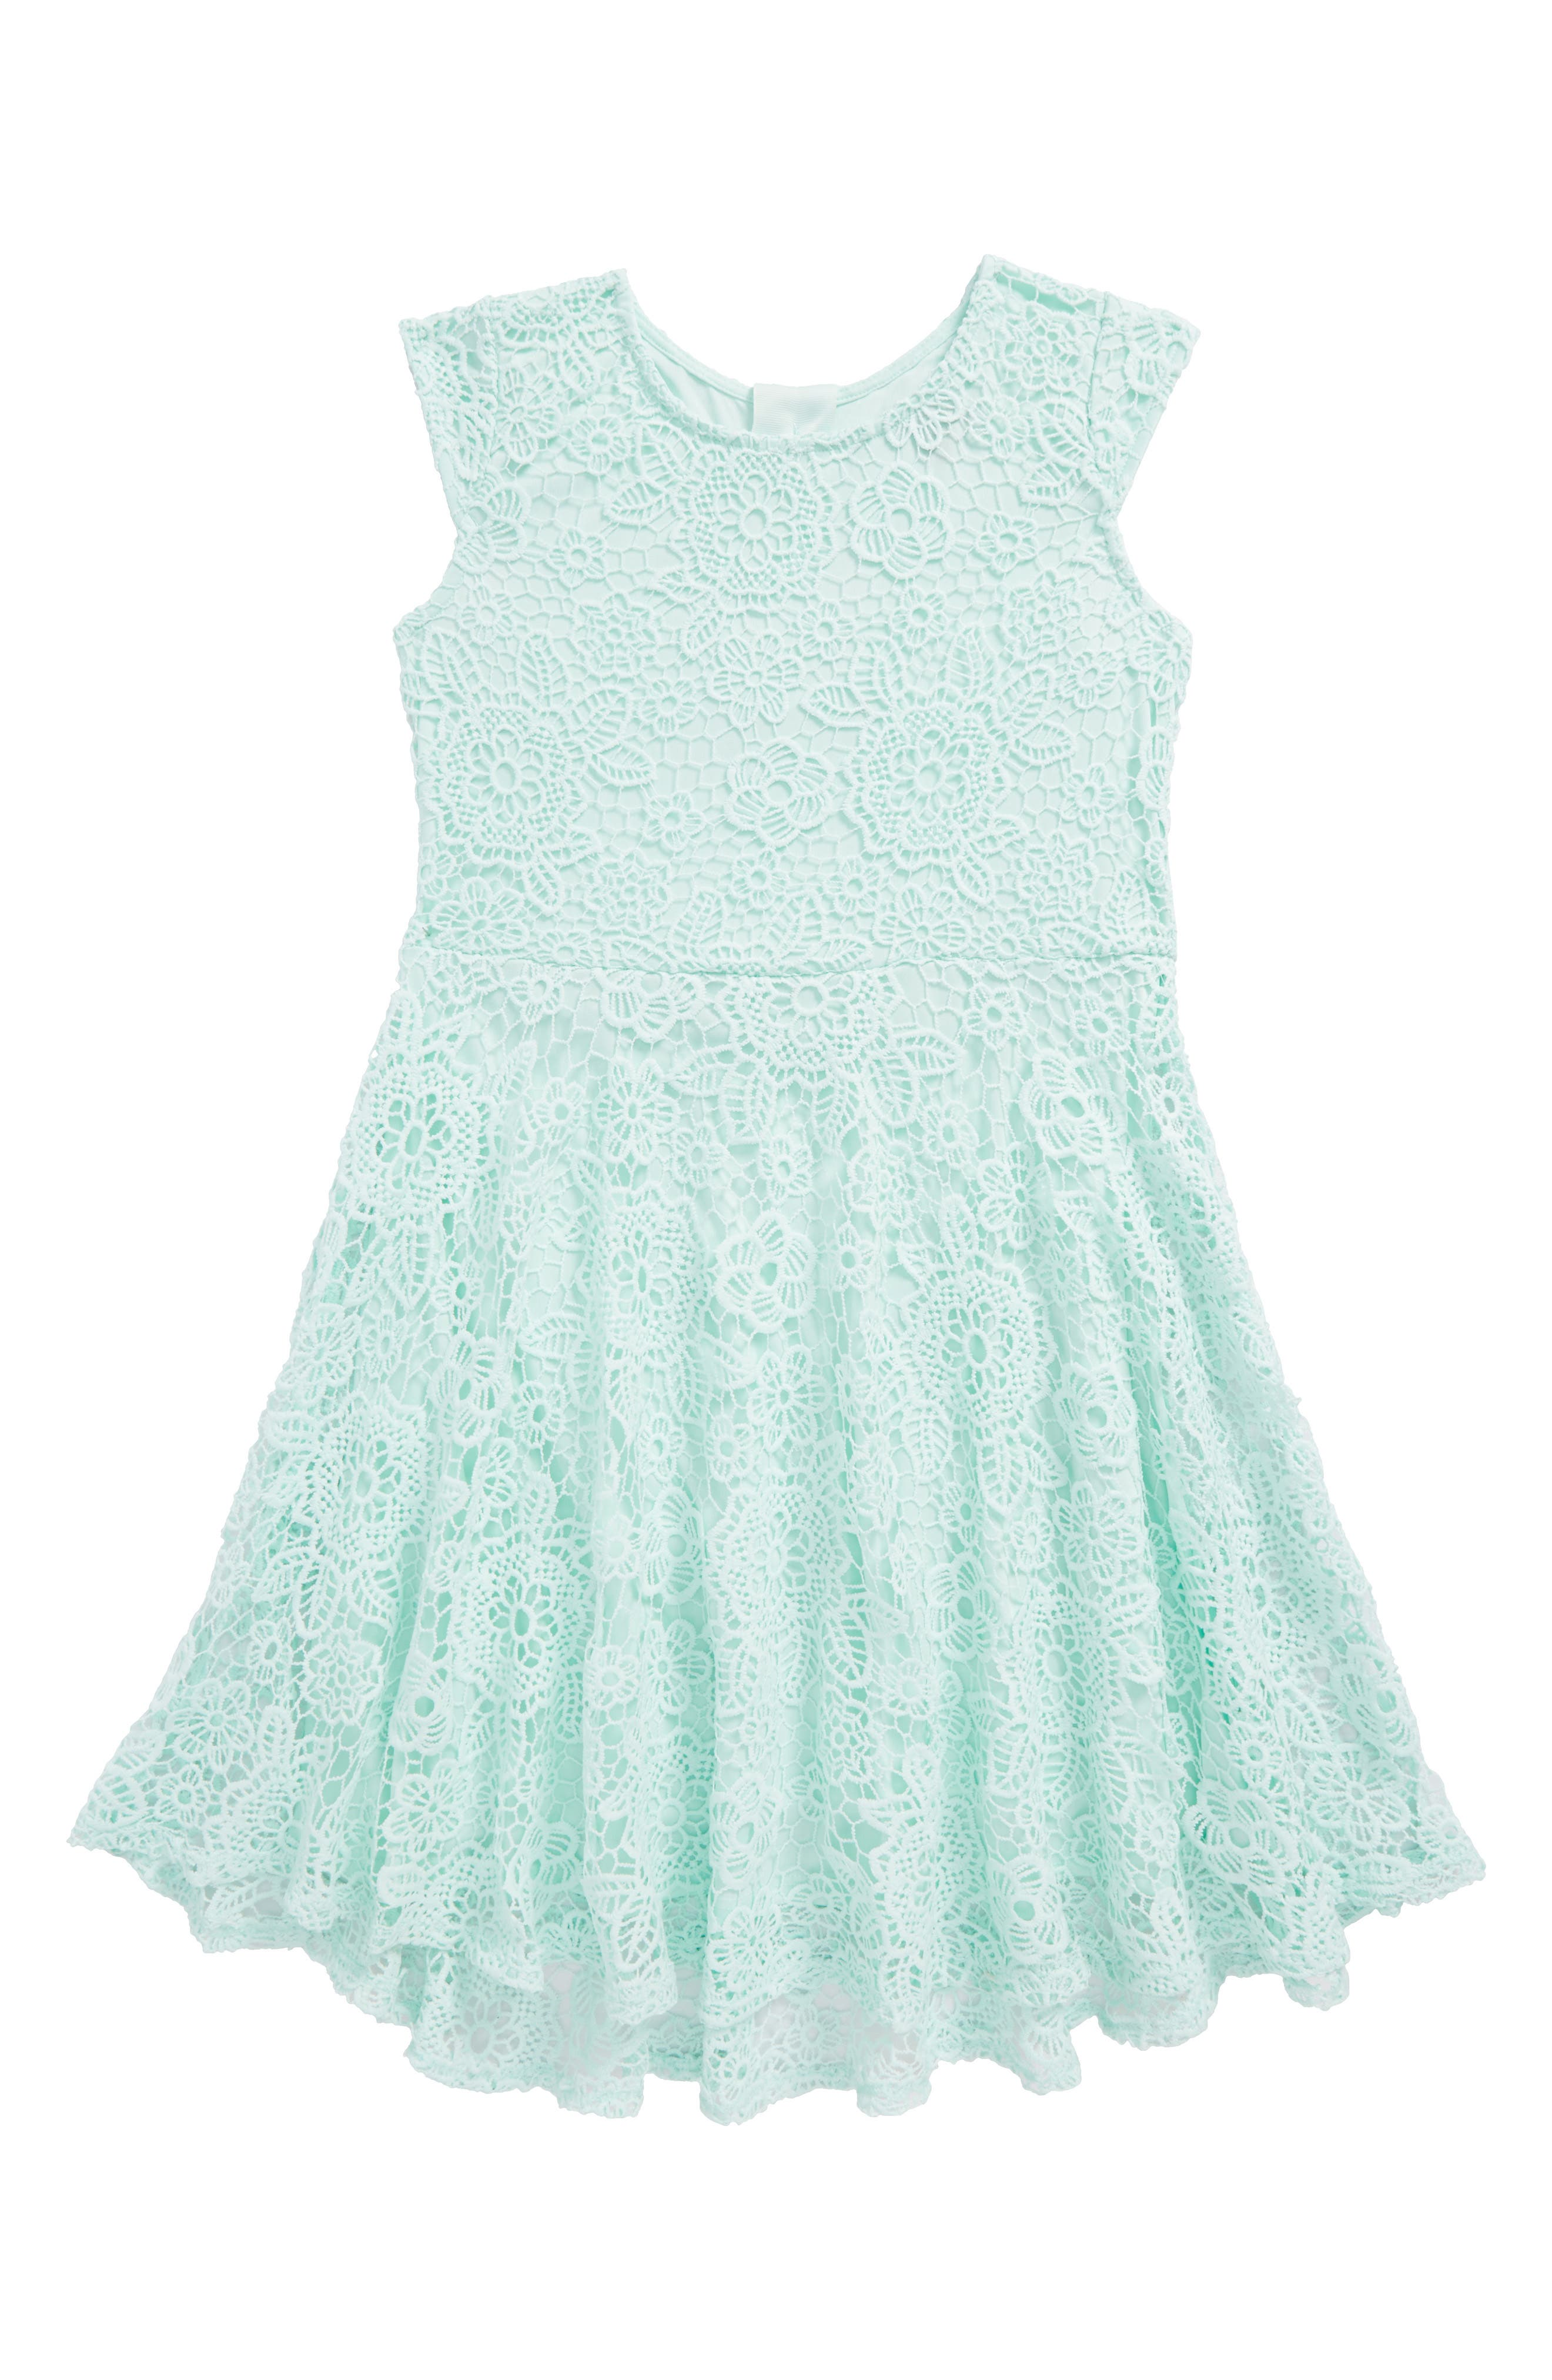 Ava & Yelly Crochet Skater Dress (Big Girls)